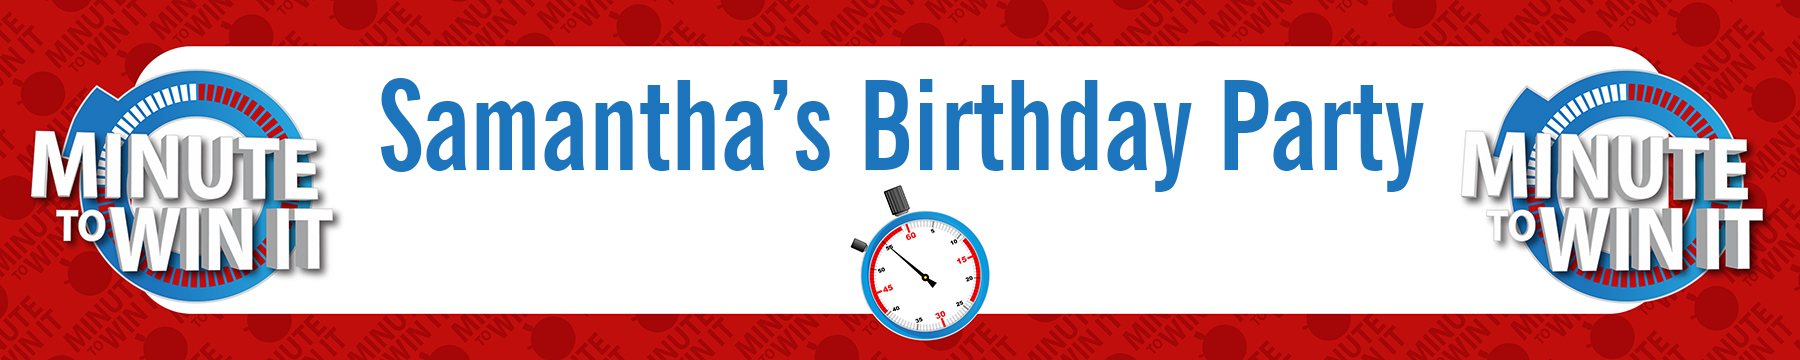 Minute To Win It Inspired - Personalized Birthday Party Banners thumbnail